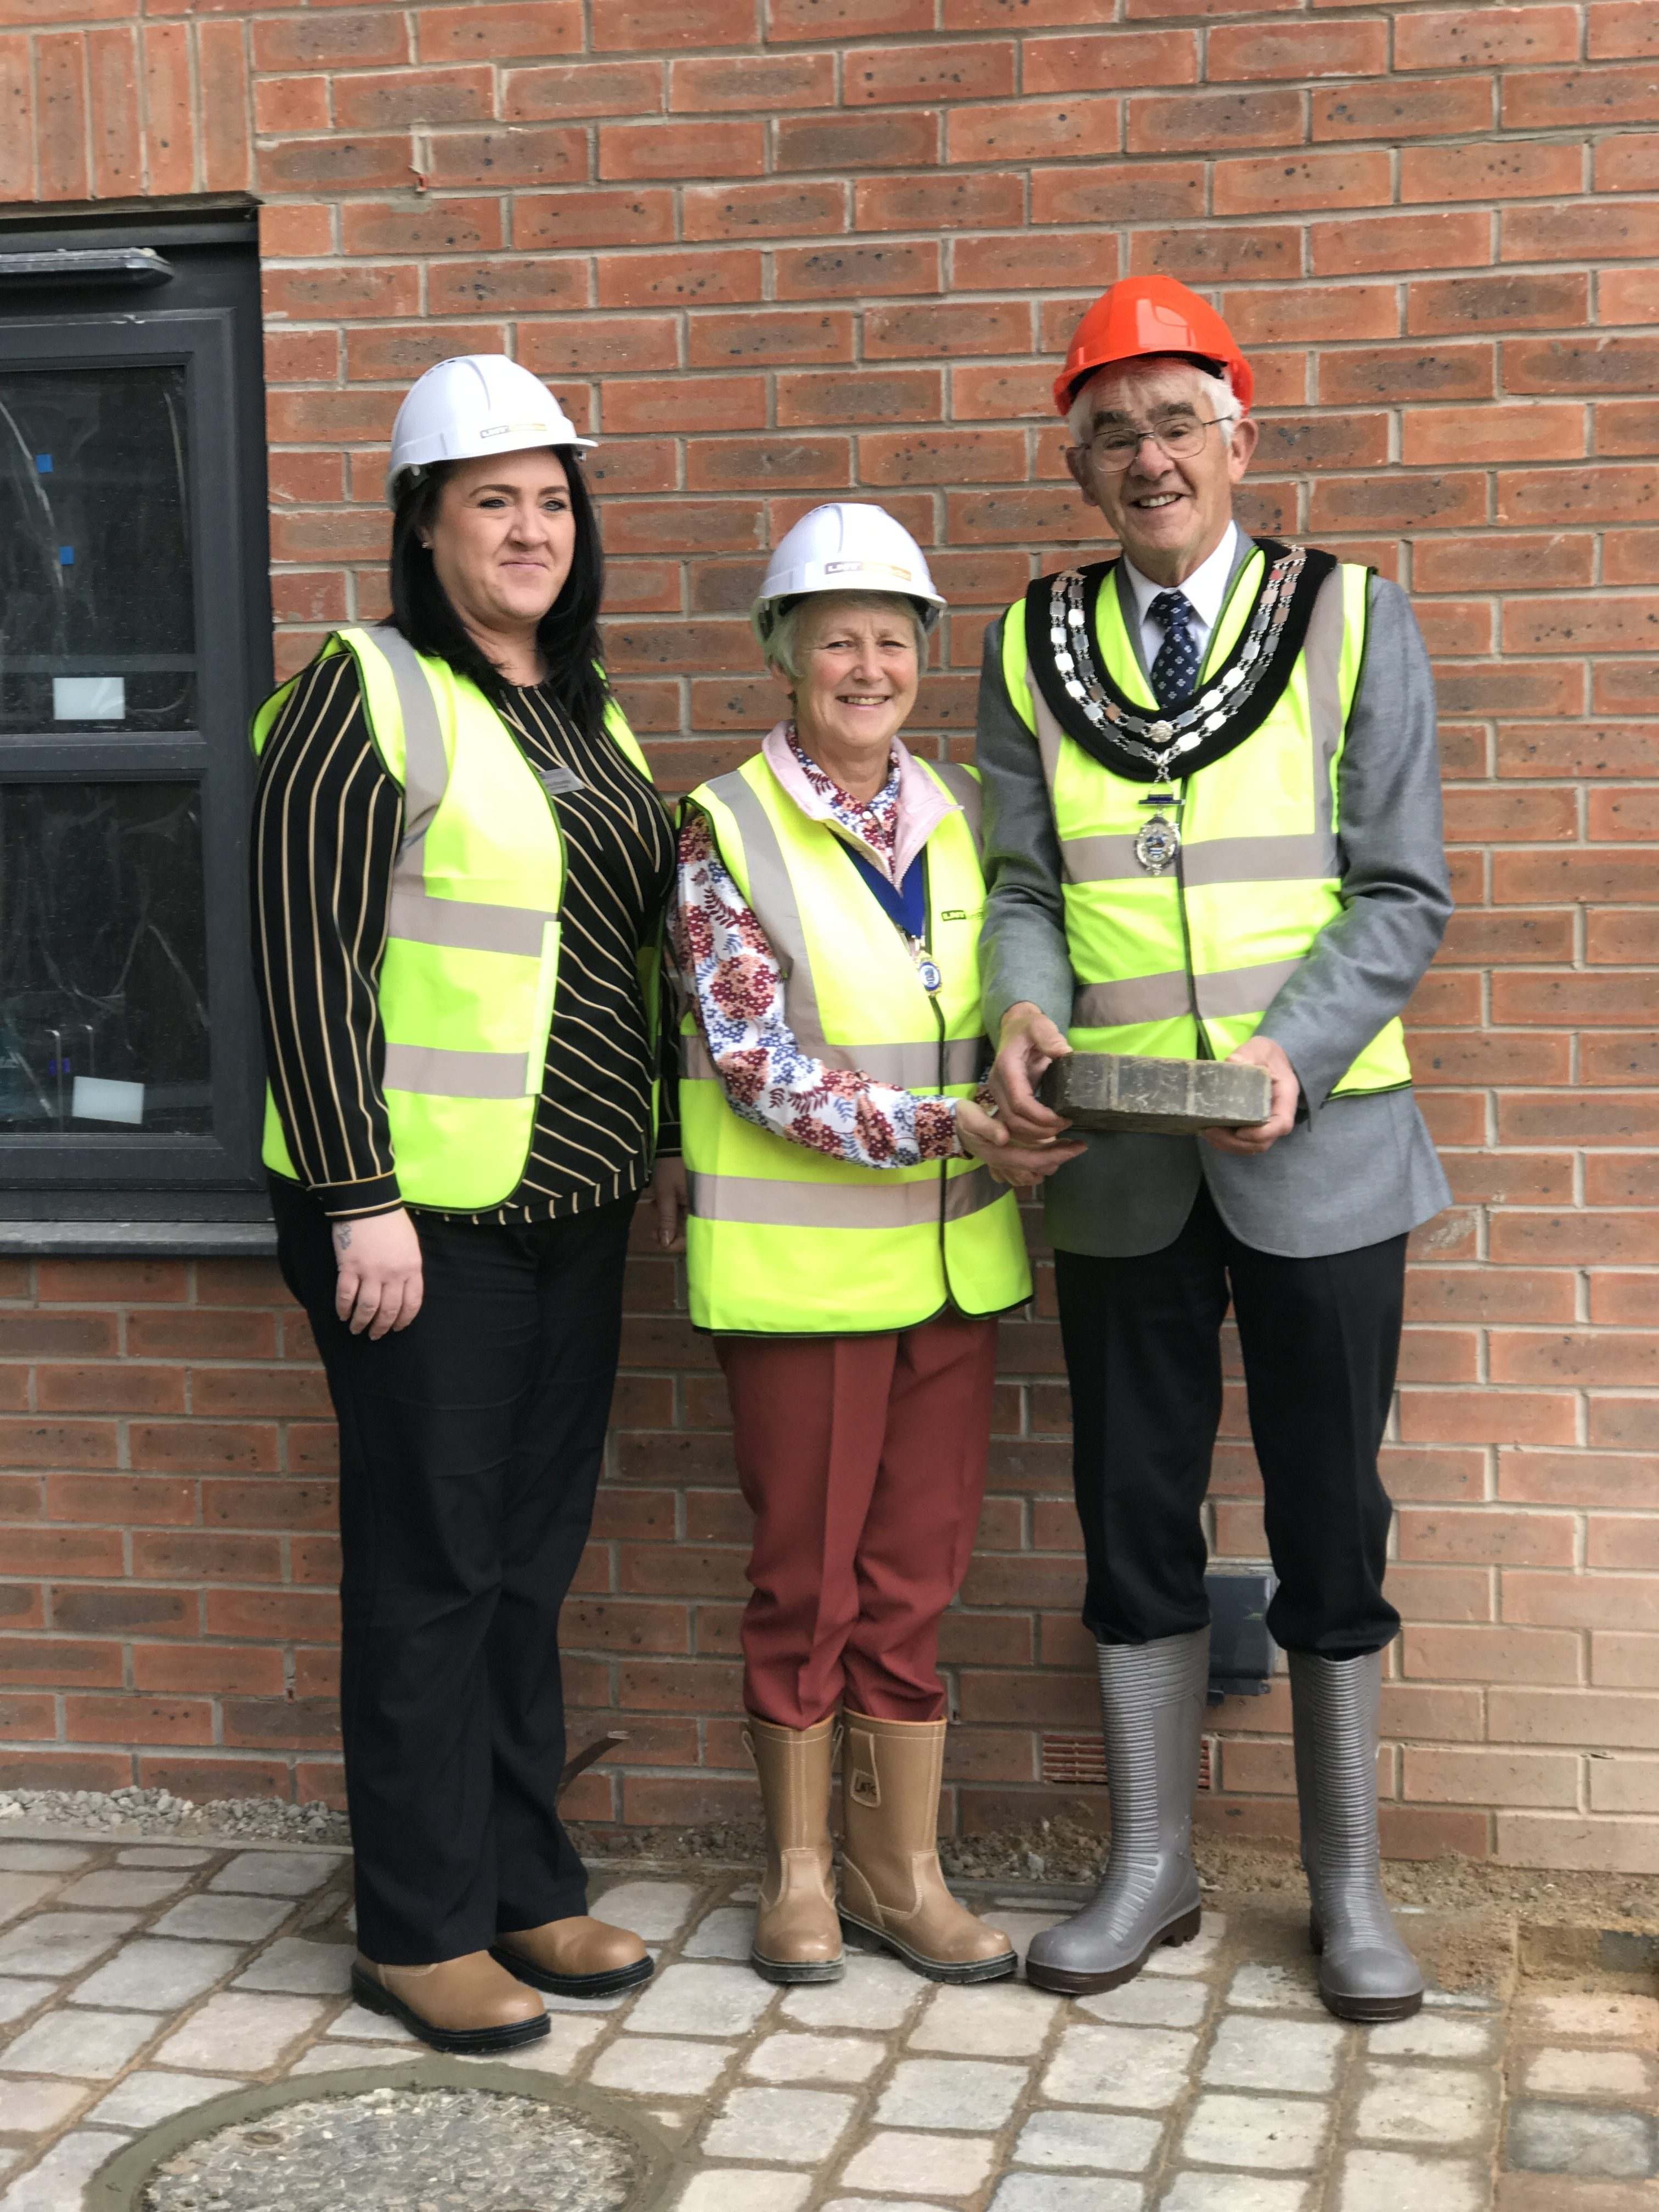 MAYOR OF WETHERBY MARKS FINAL STAGE OF CONSTRUCTION AT LOCAL CARE HOME